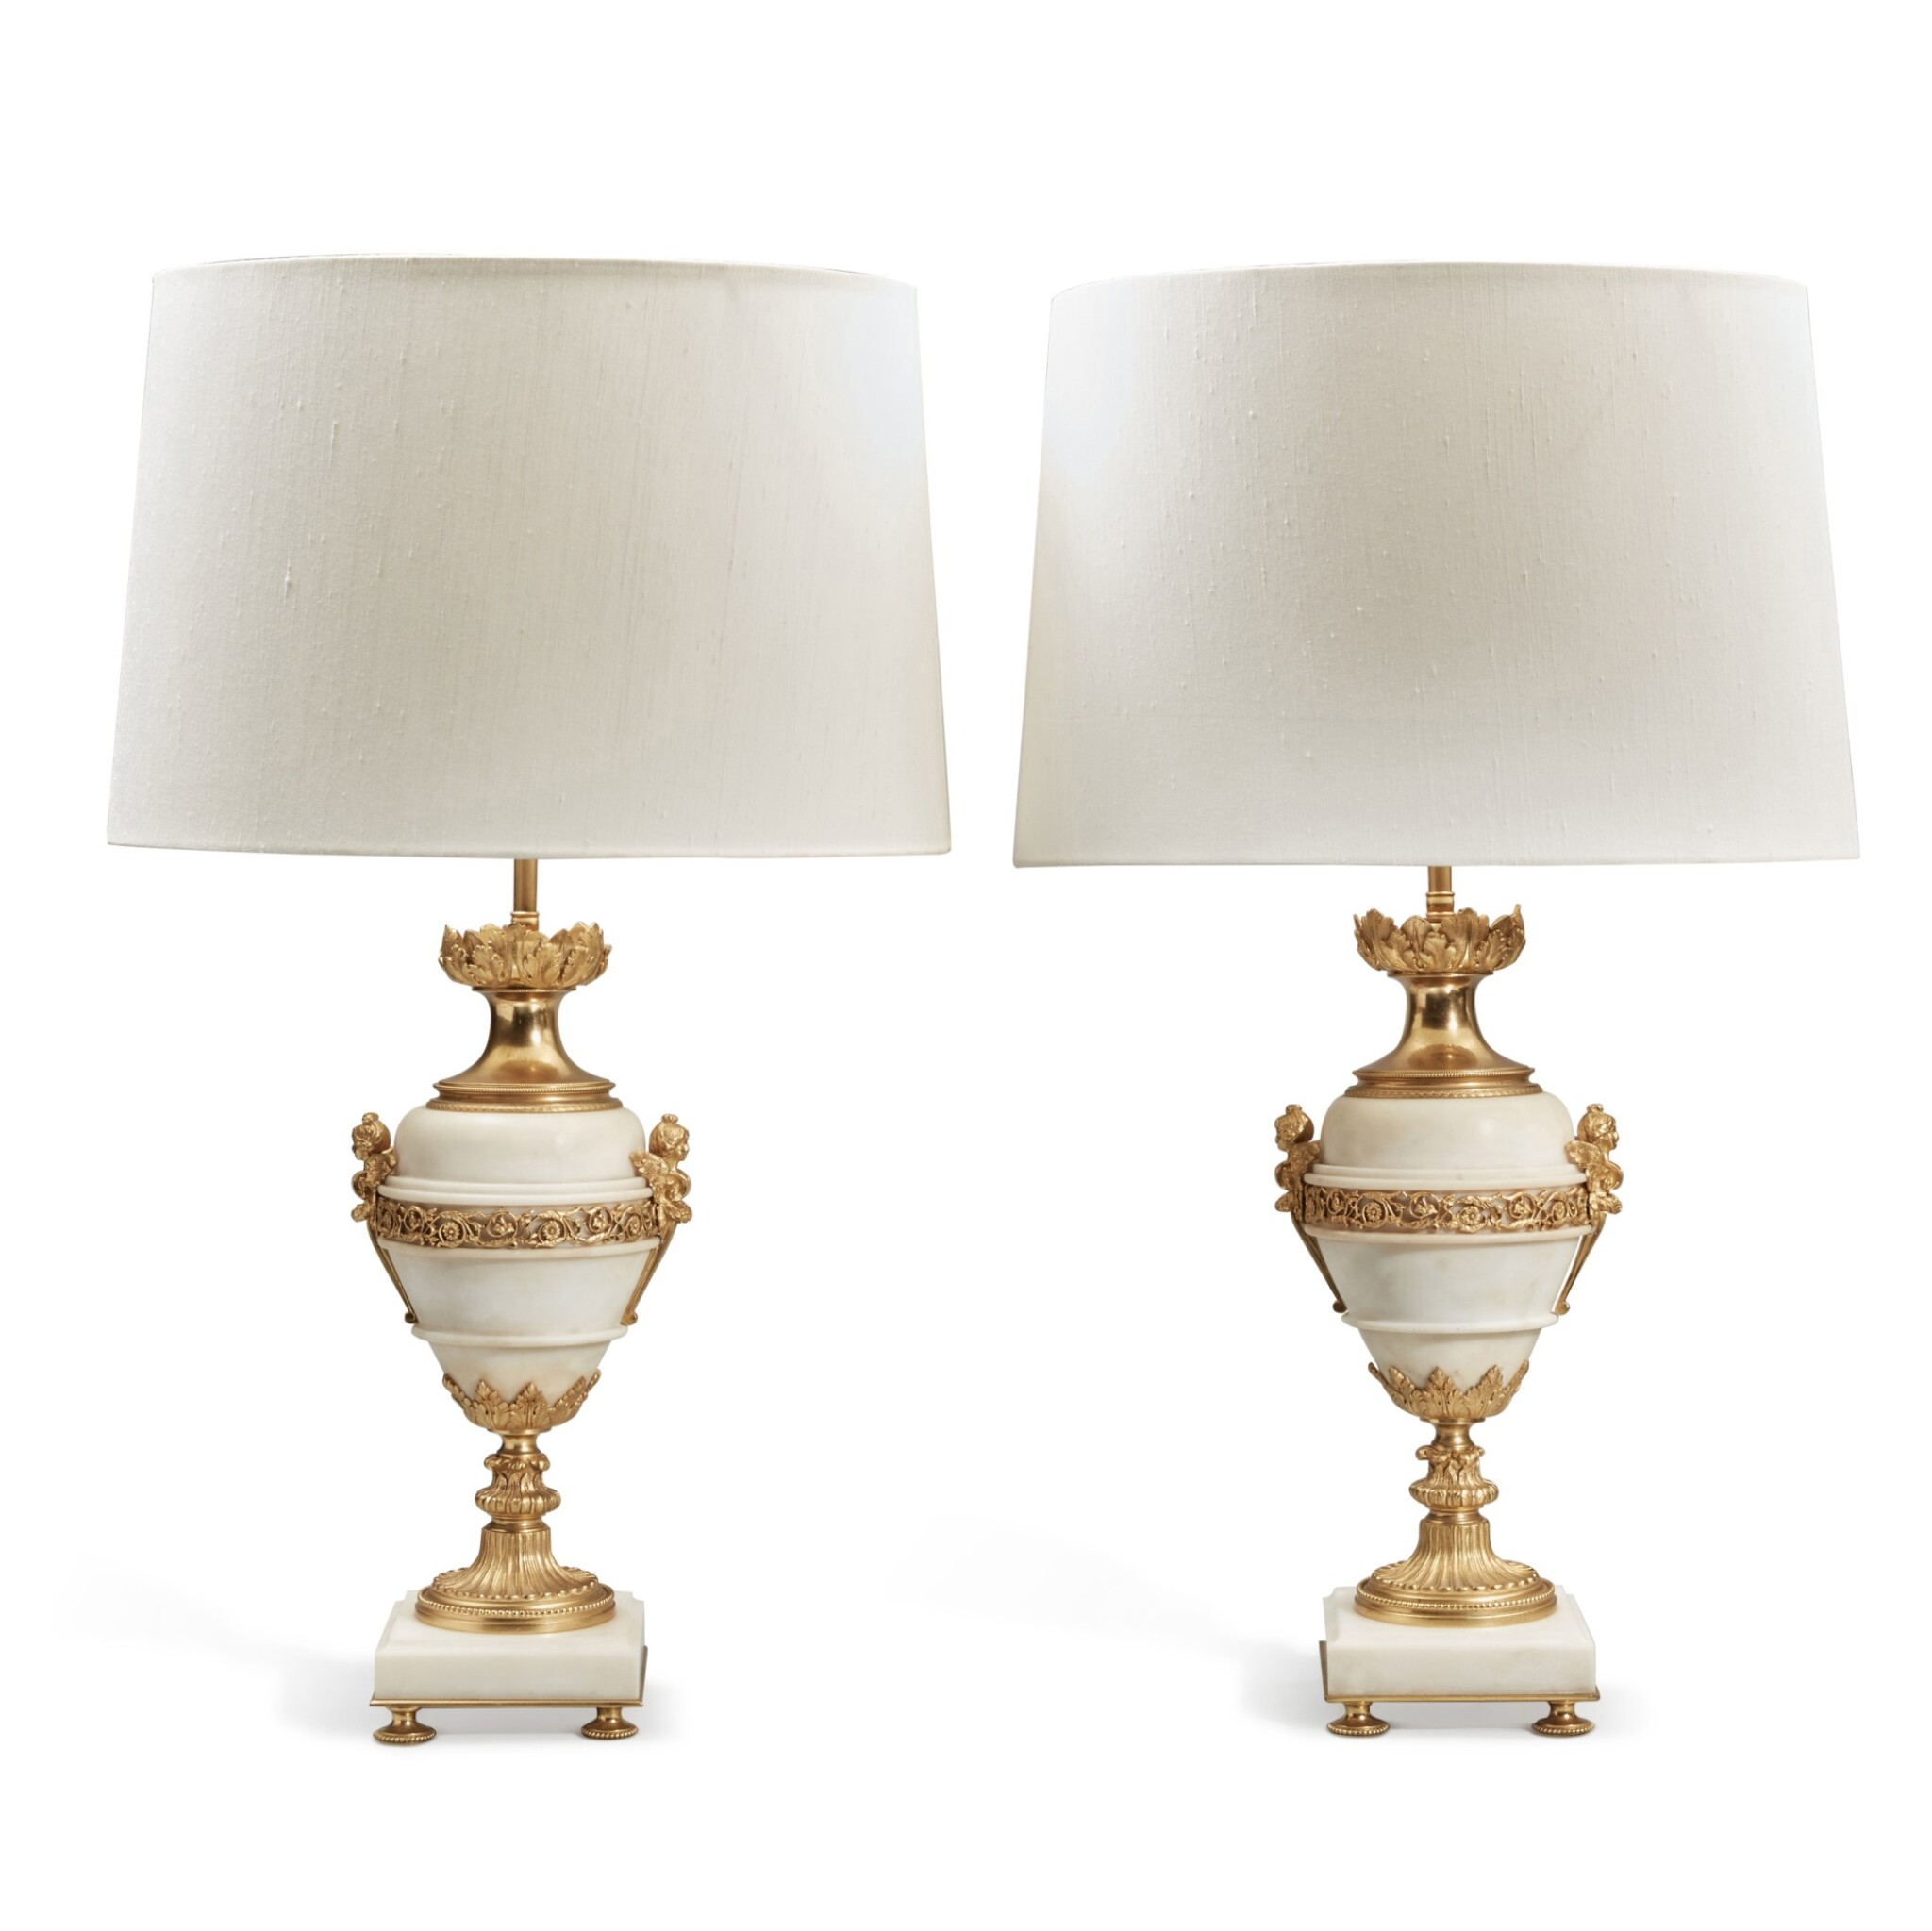 View full screen - View 1 of Lot 128. A Pair of Gilt Bronze and Gilt Metal-Mounted White Marble Lamps.